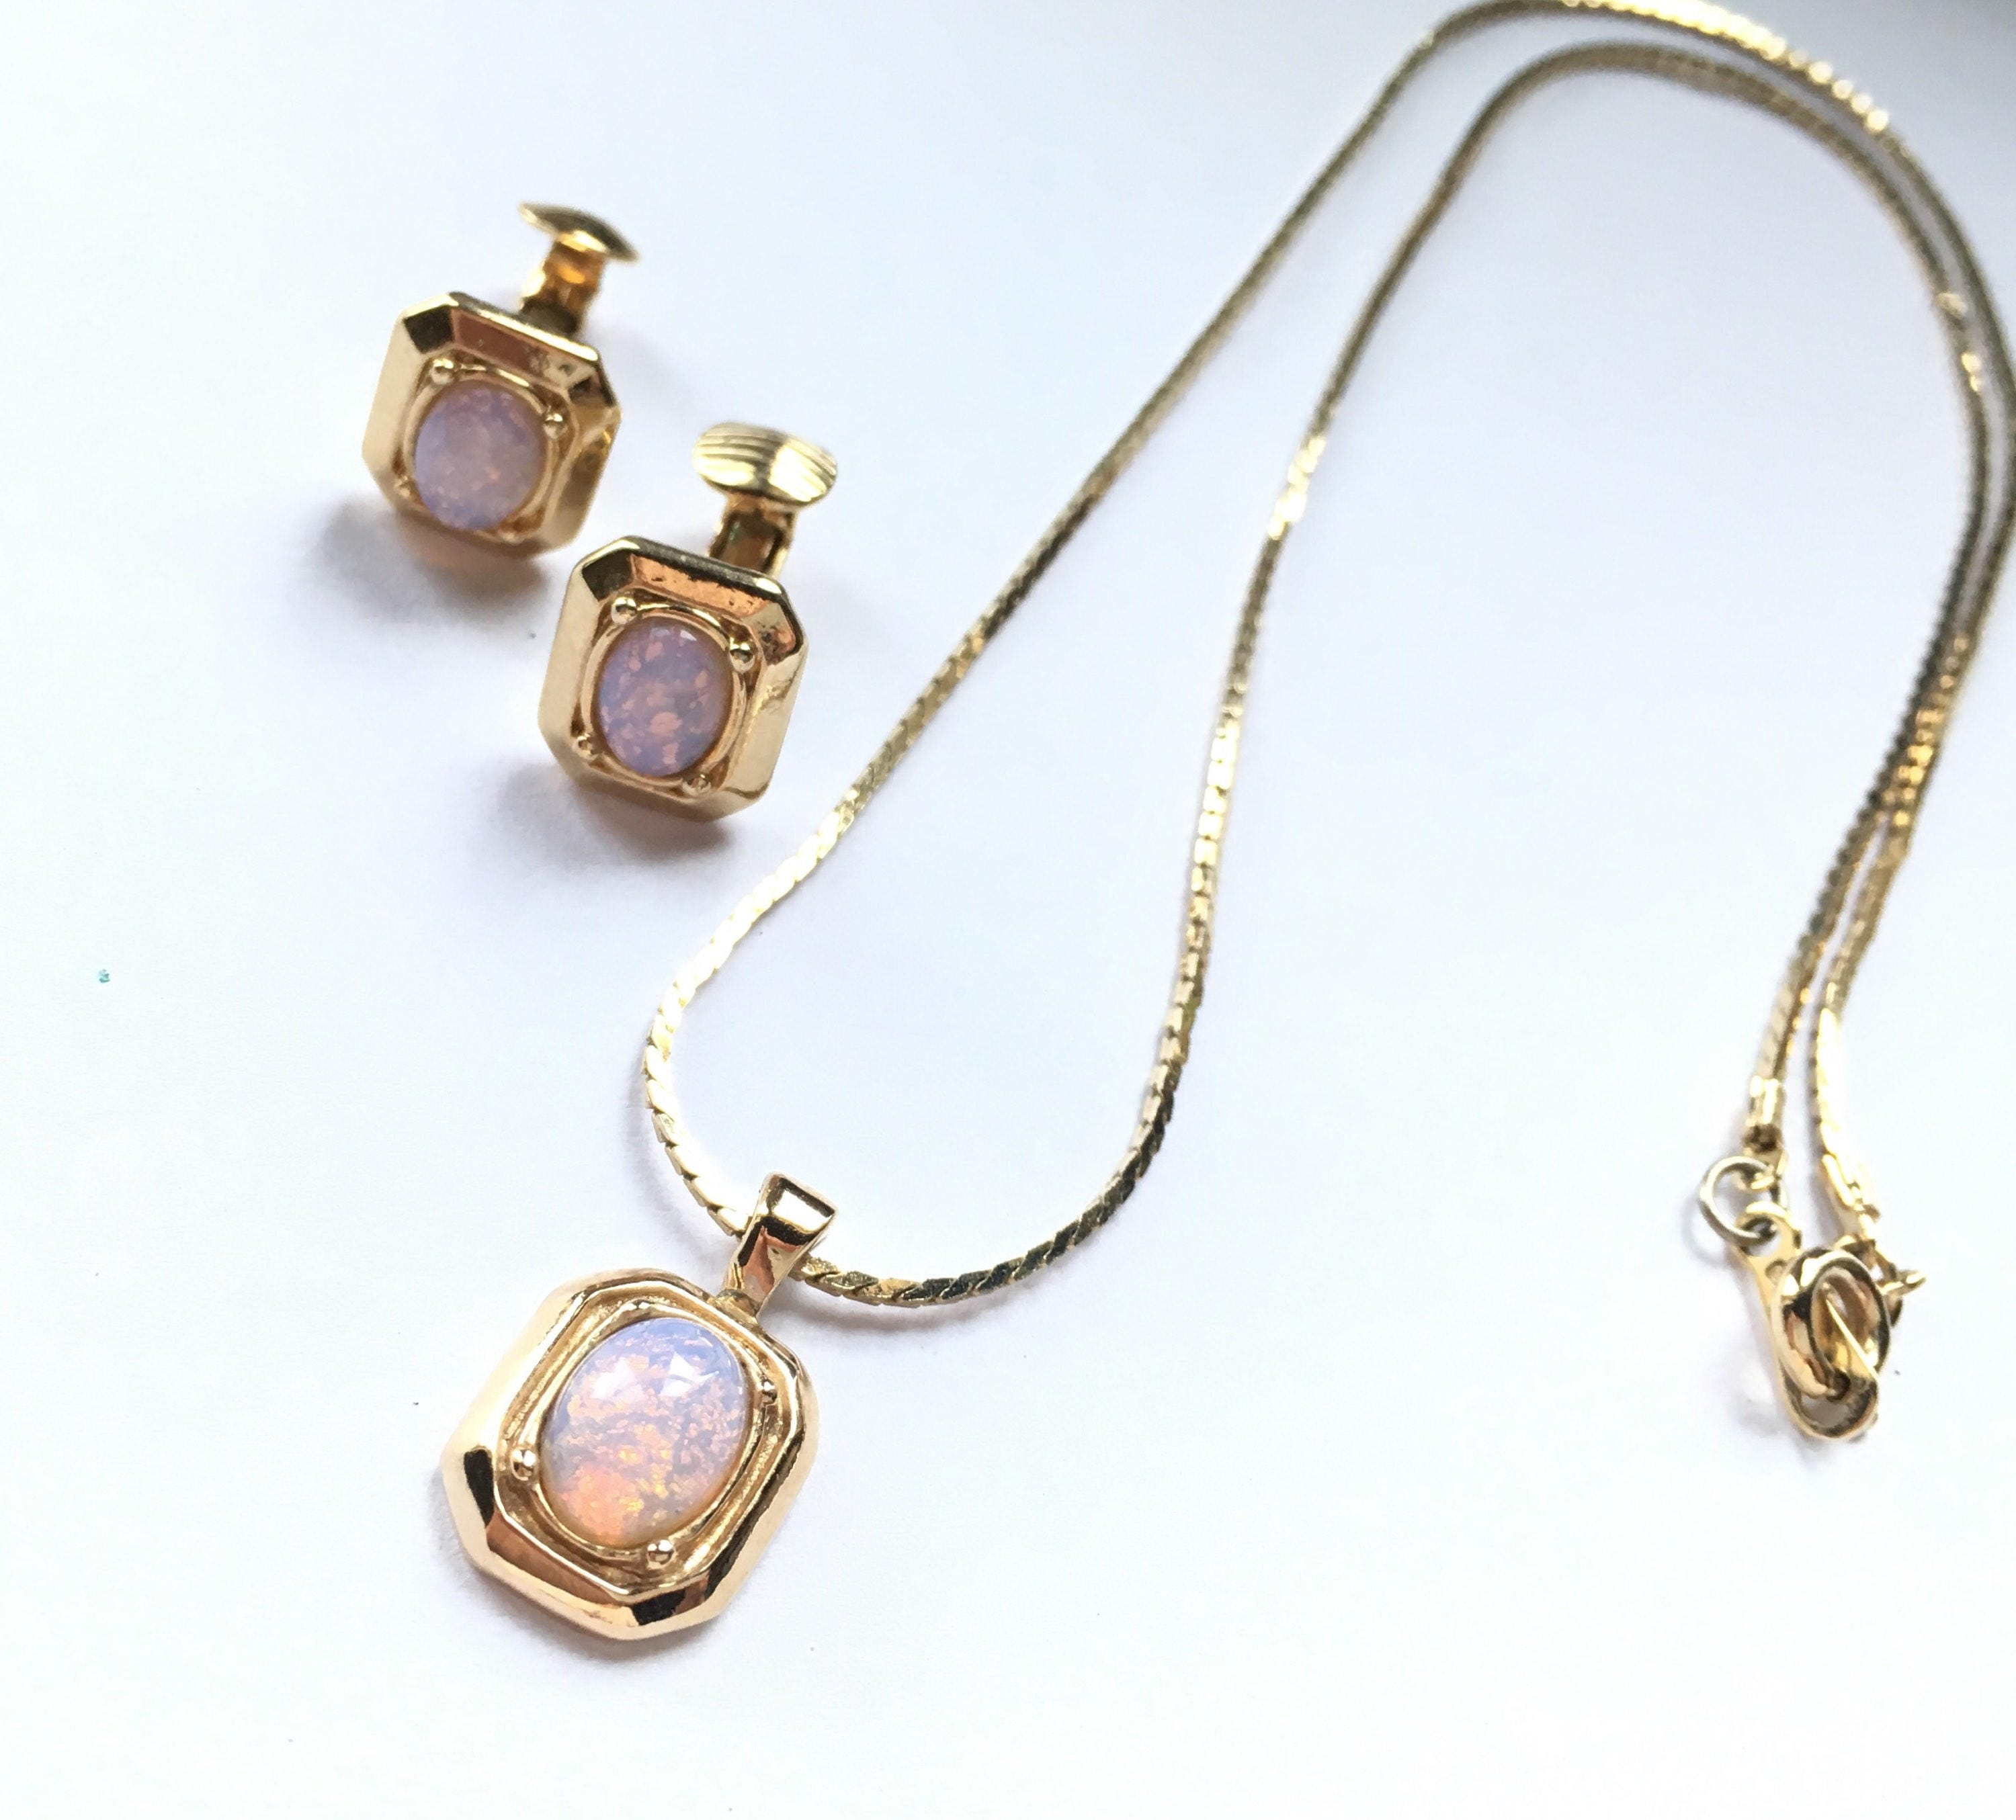 Collectible Avon Jewelry Set Rare Necklace Earrings Vintage